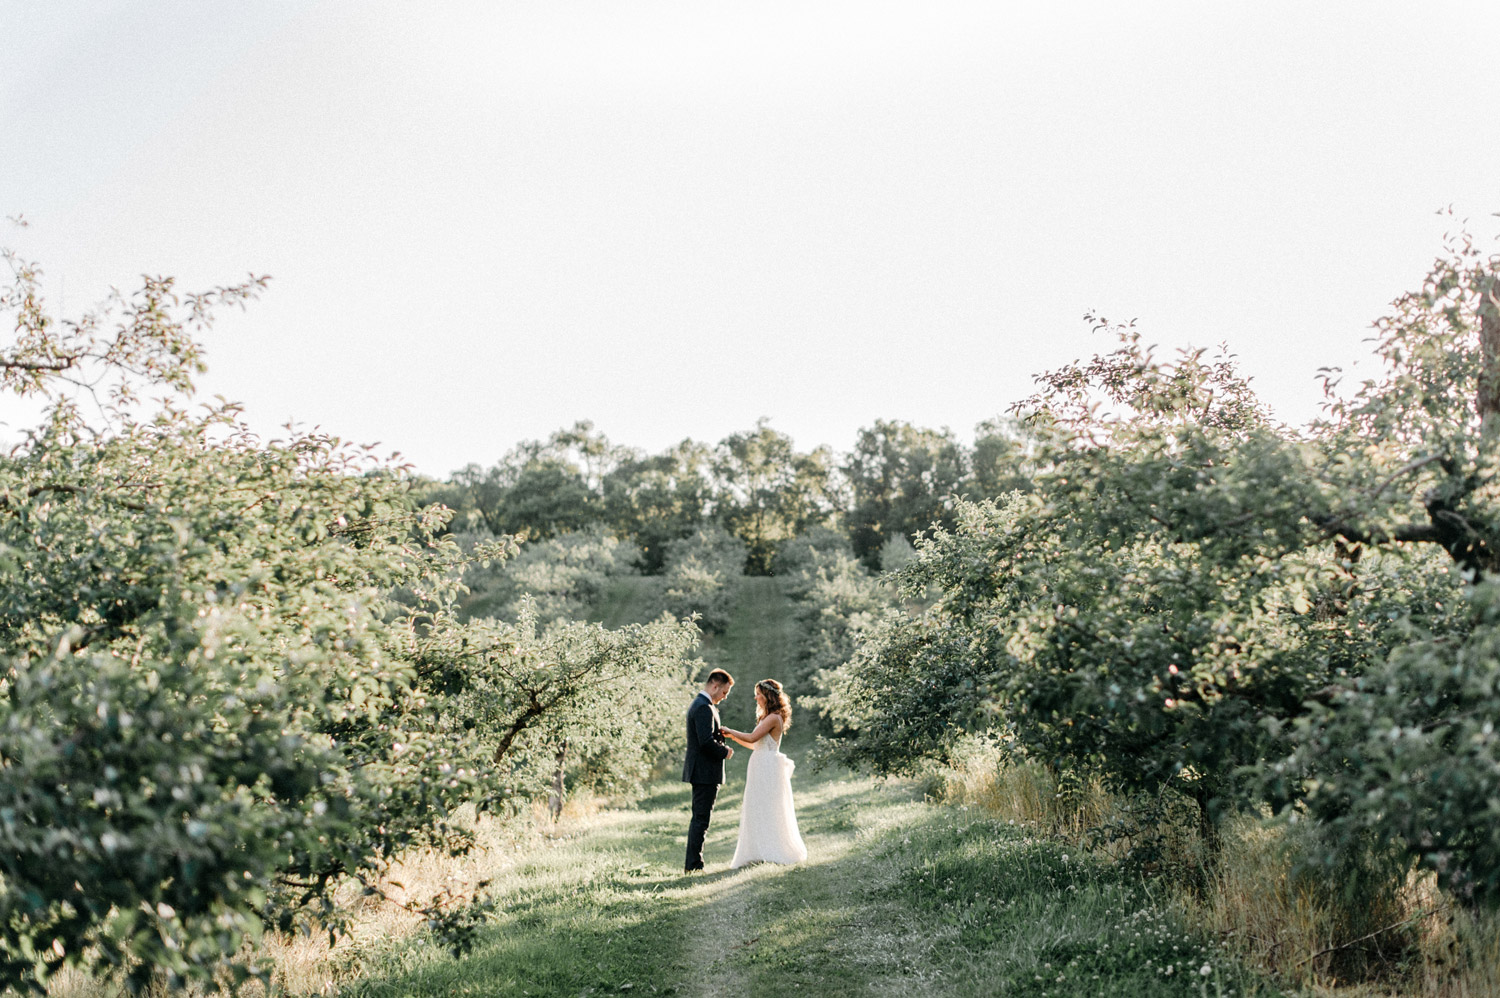 Bride and Groom Portraits at Minnetonka Orchards by Geneoh Photography